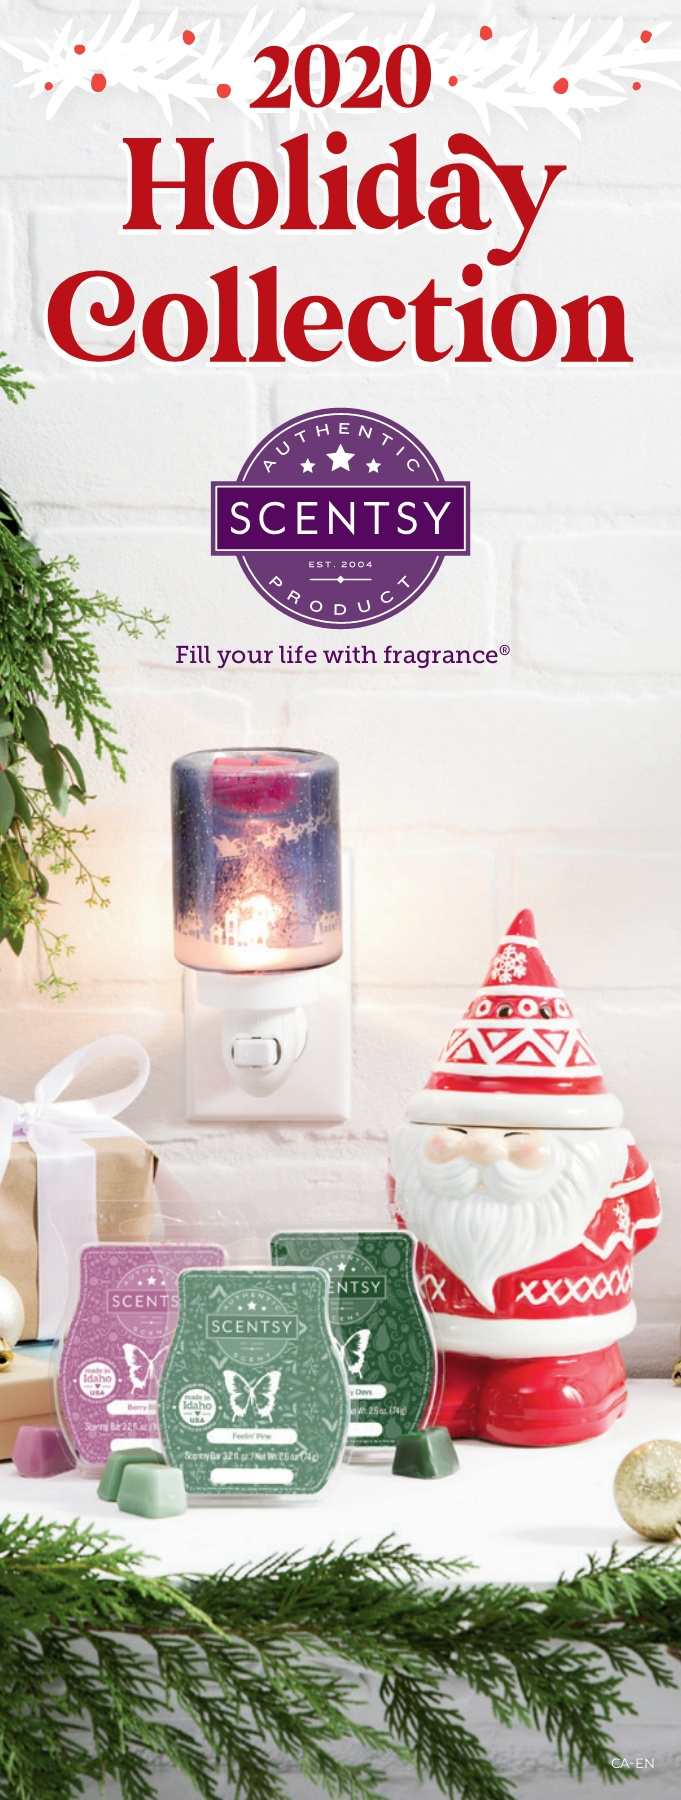 Scentsy Holiday Collection Brochure 2020 Flip Ebook Pages 1 7 Anyflip Anyflip